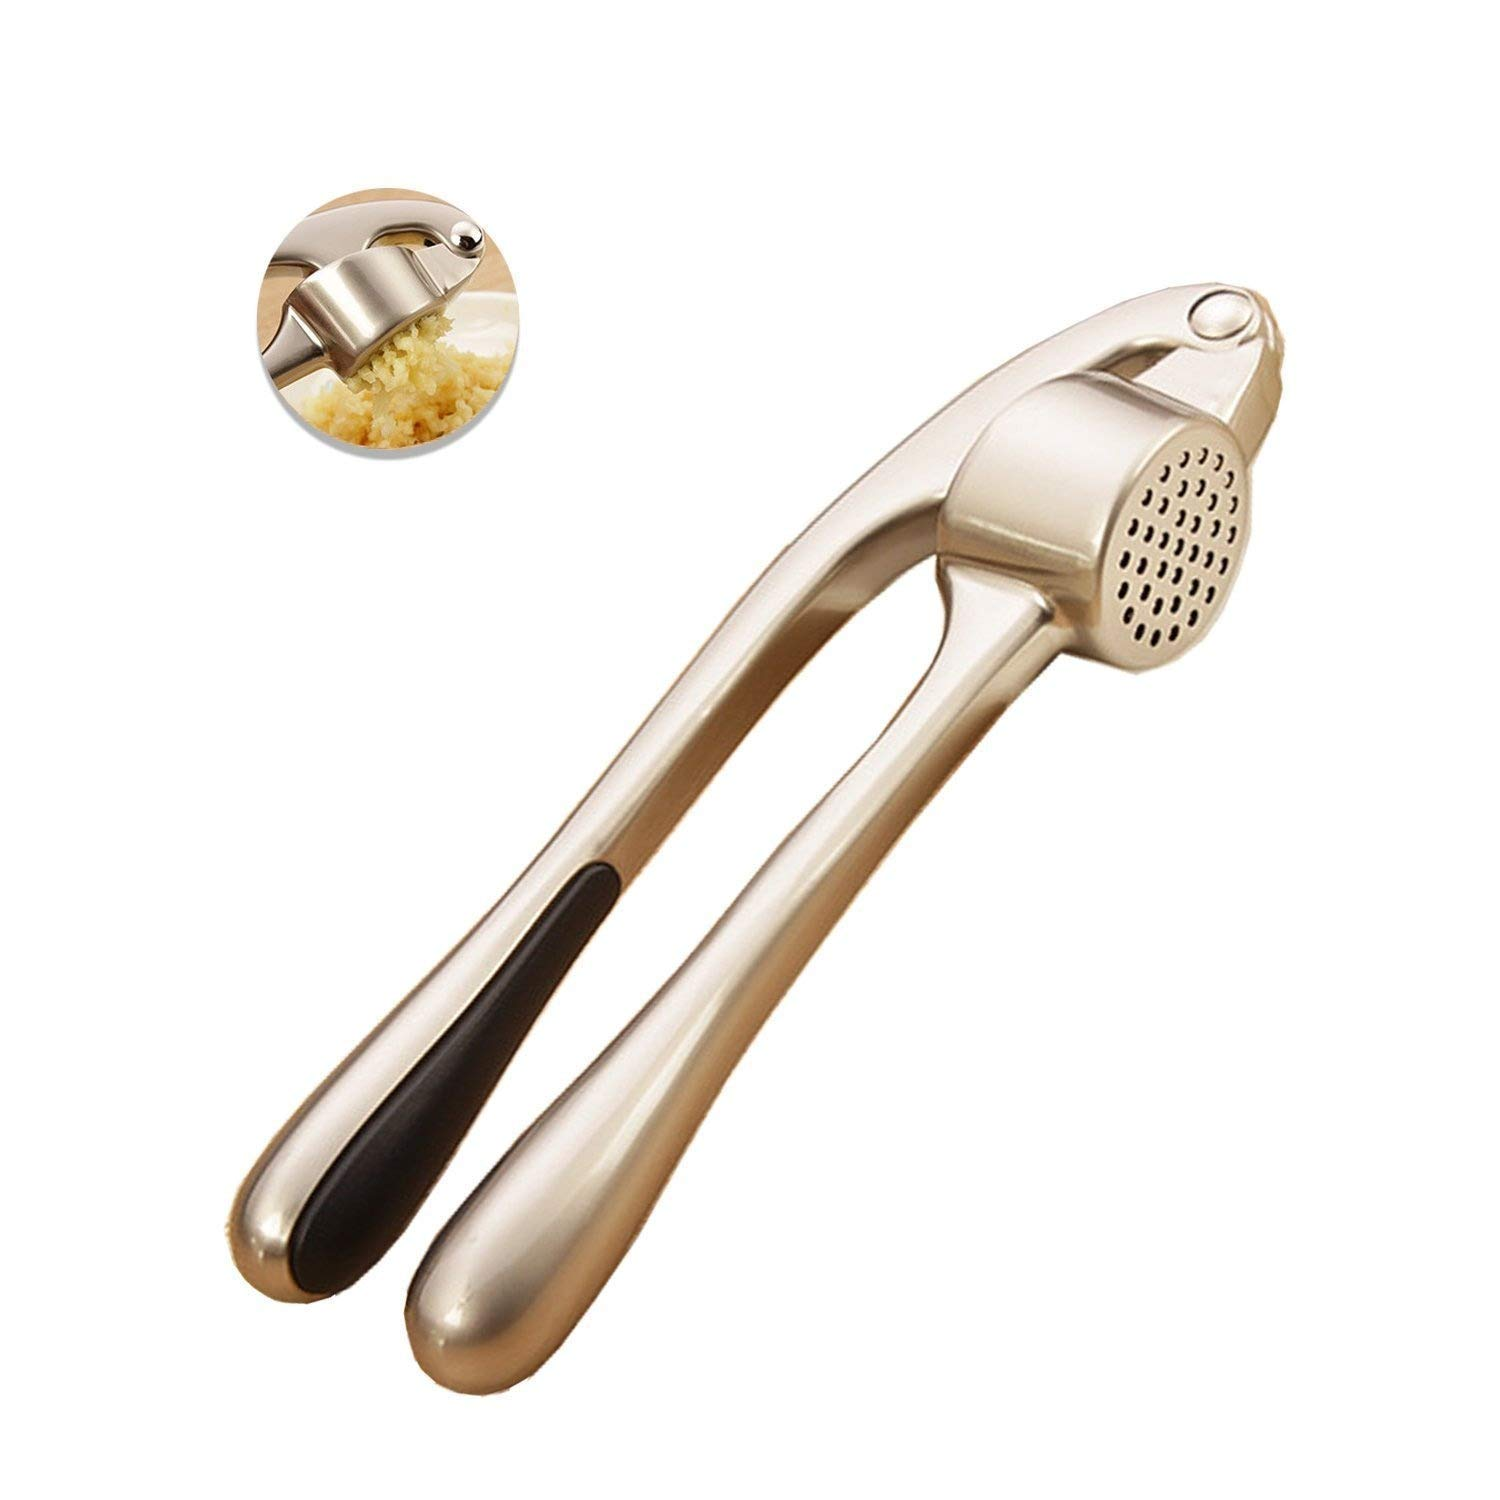 LuPuSon garlic press stainless steel professional heavy soft- Handled crush garlic and easy to clean-Use for everyone